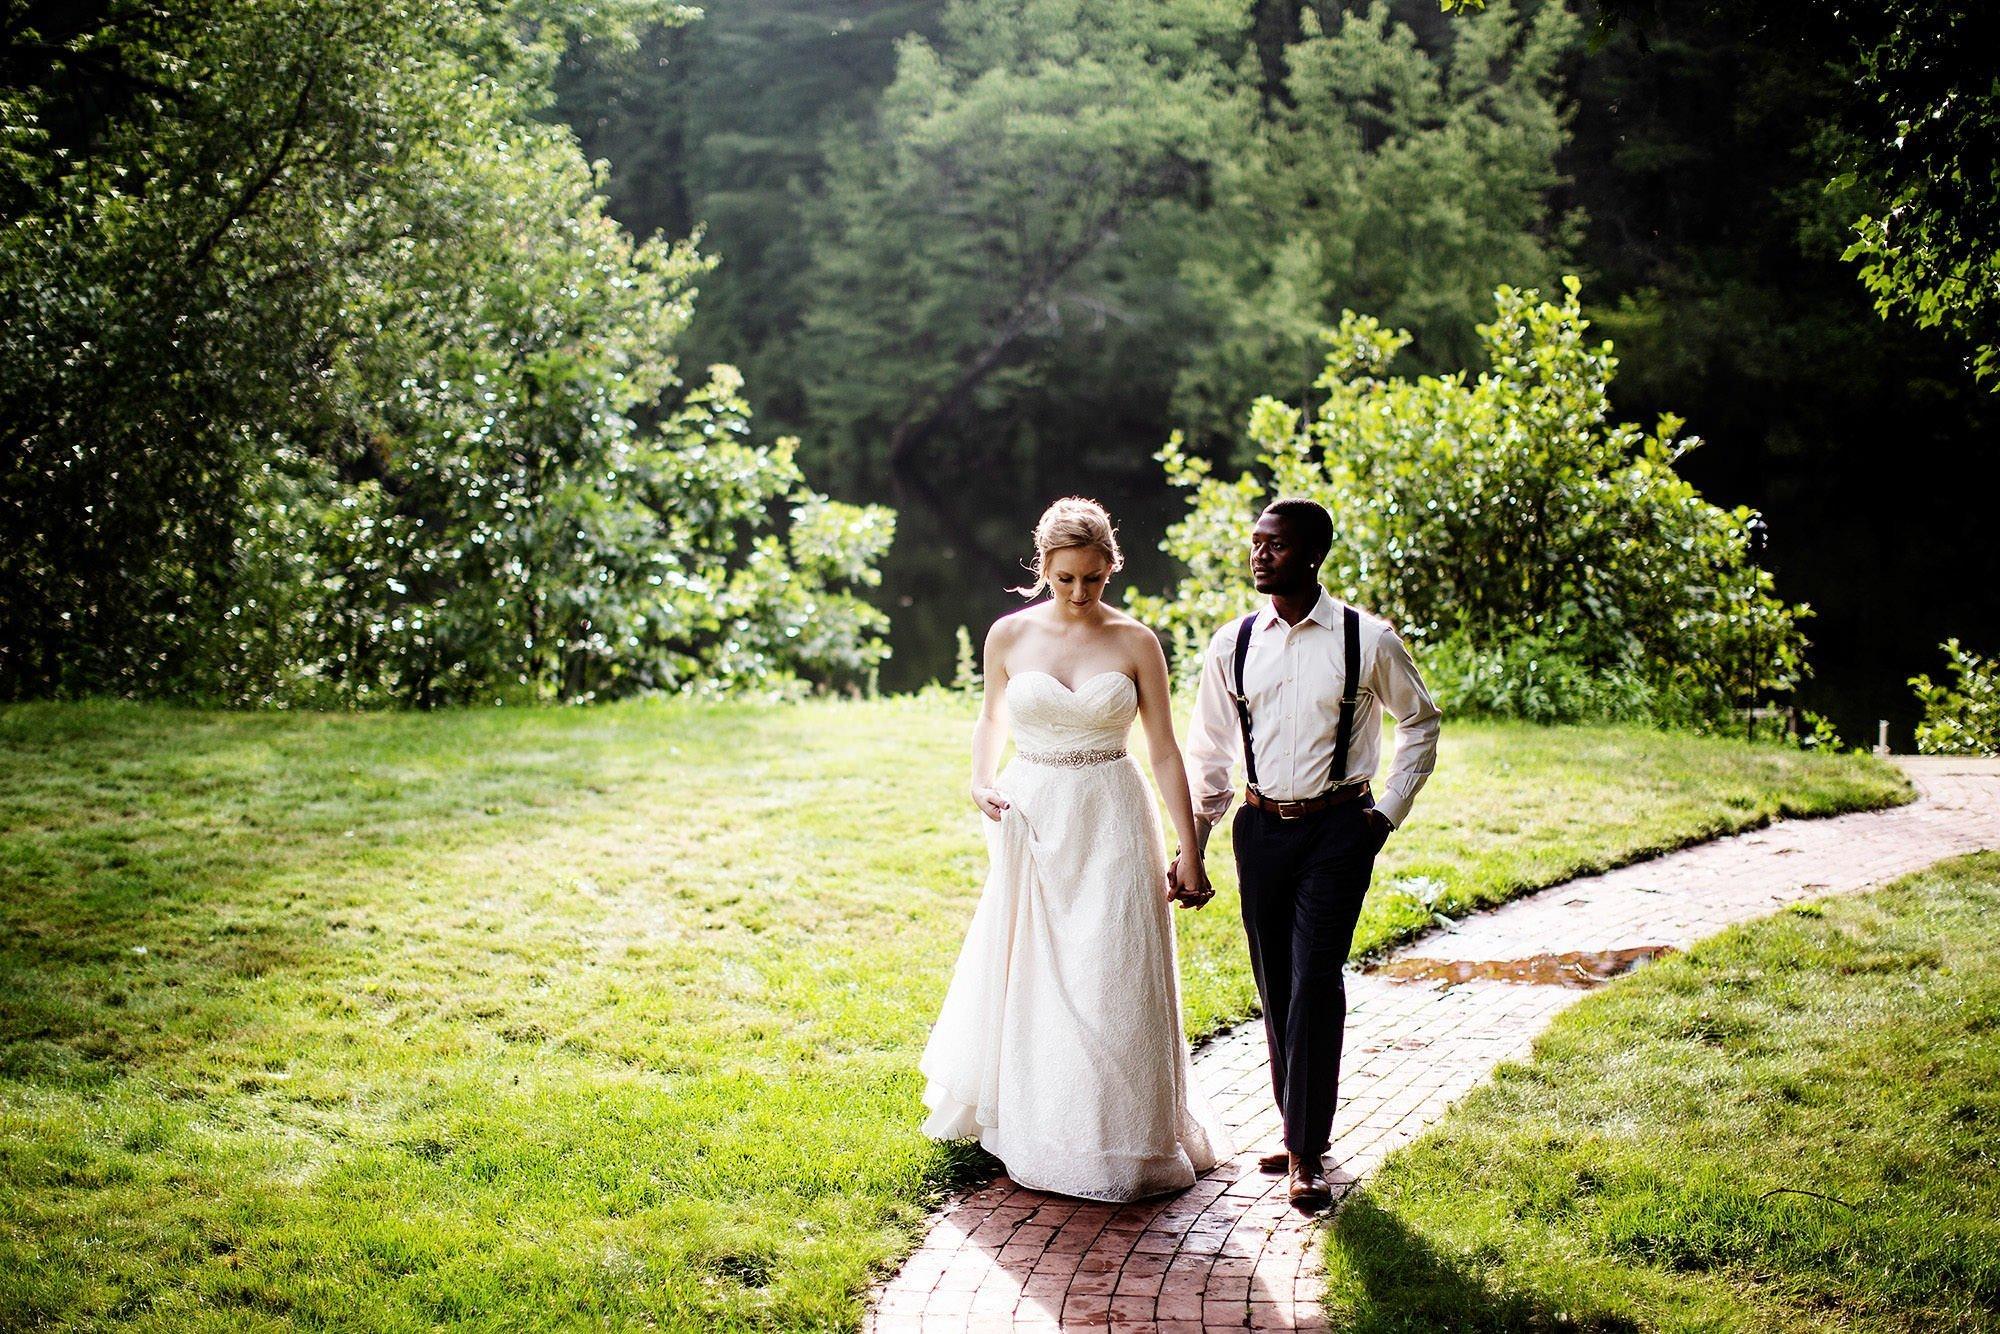 The bride and groom walk after their ceremony during their New Hampshire backyard wedding.